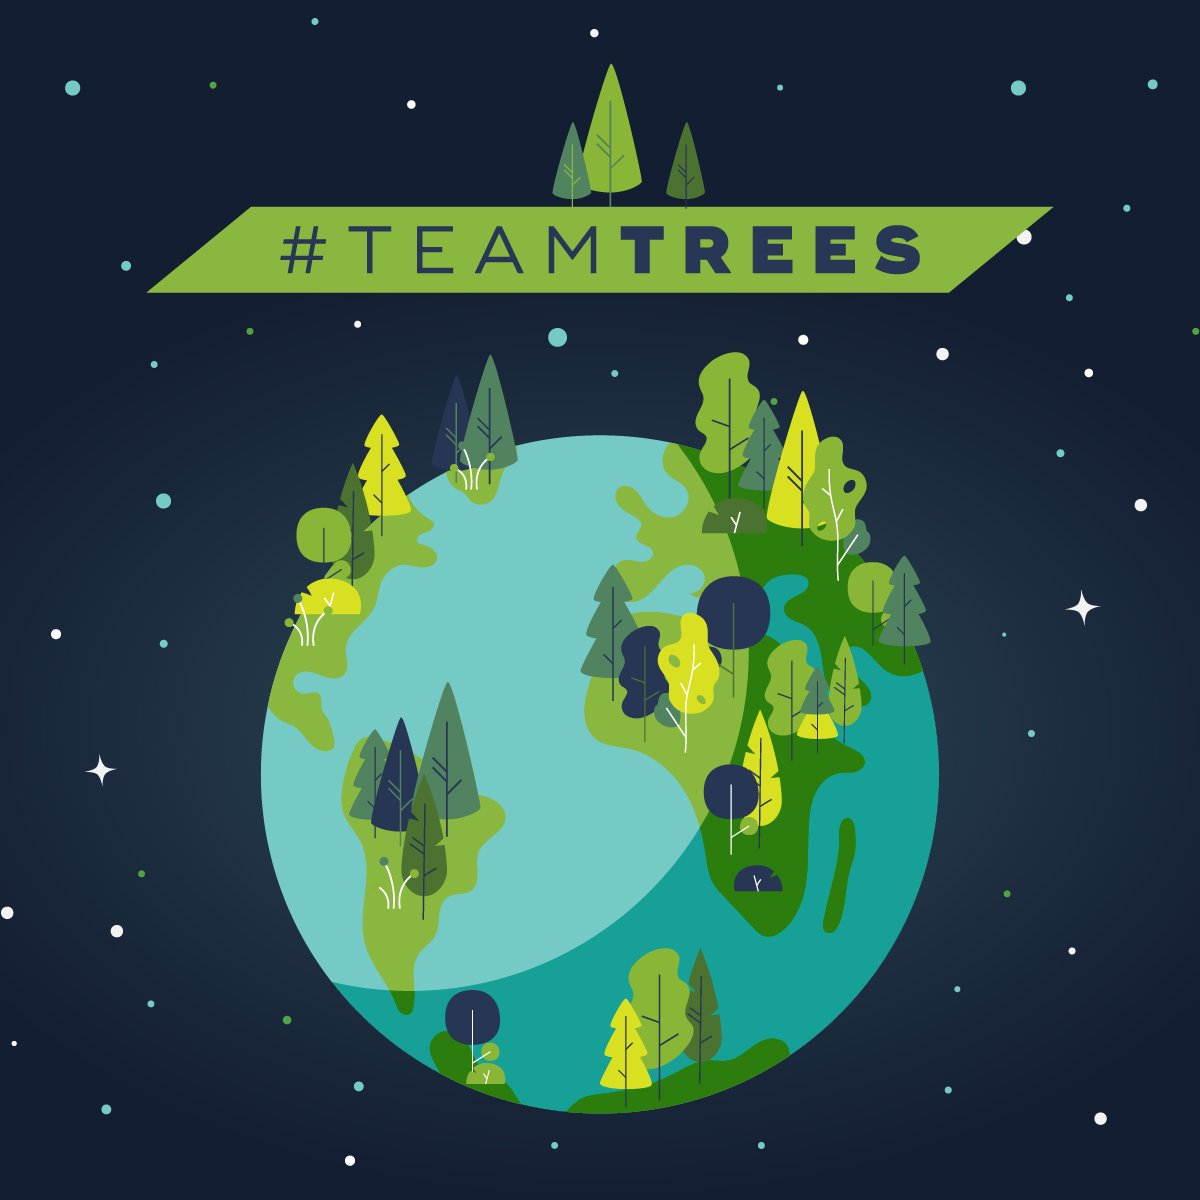 One of my most favorite things in the whole wide world is the trees. Get #TeamTrees to their goal of planting 20 million trees by January 1, 2020! 🌲 teamtrees.org